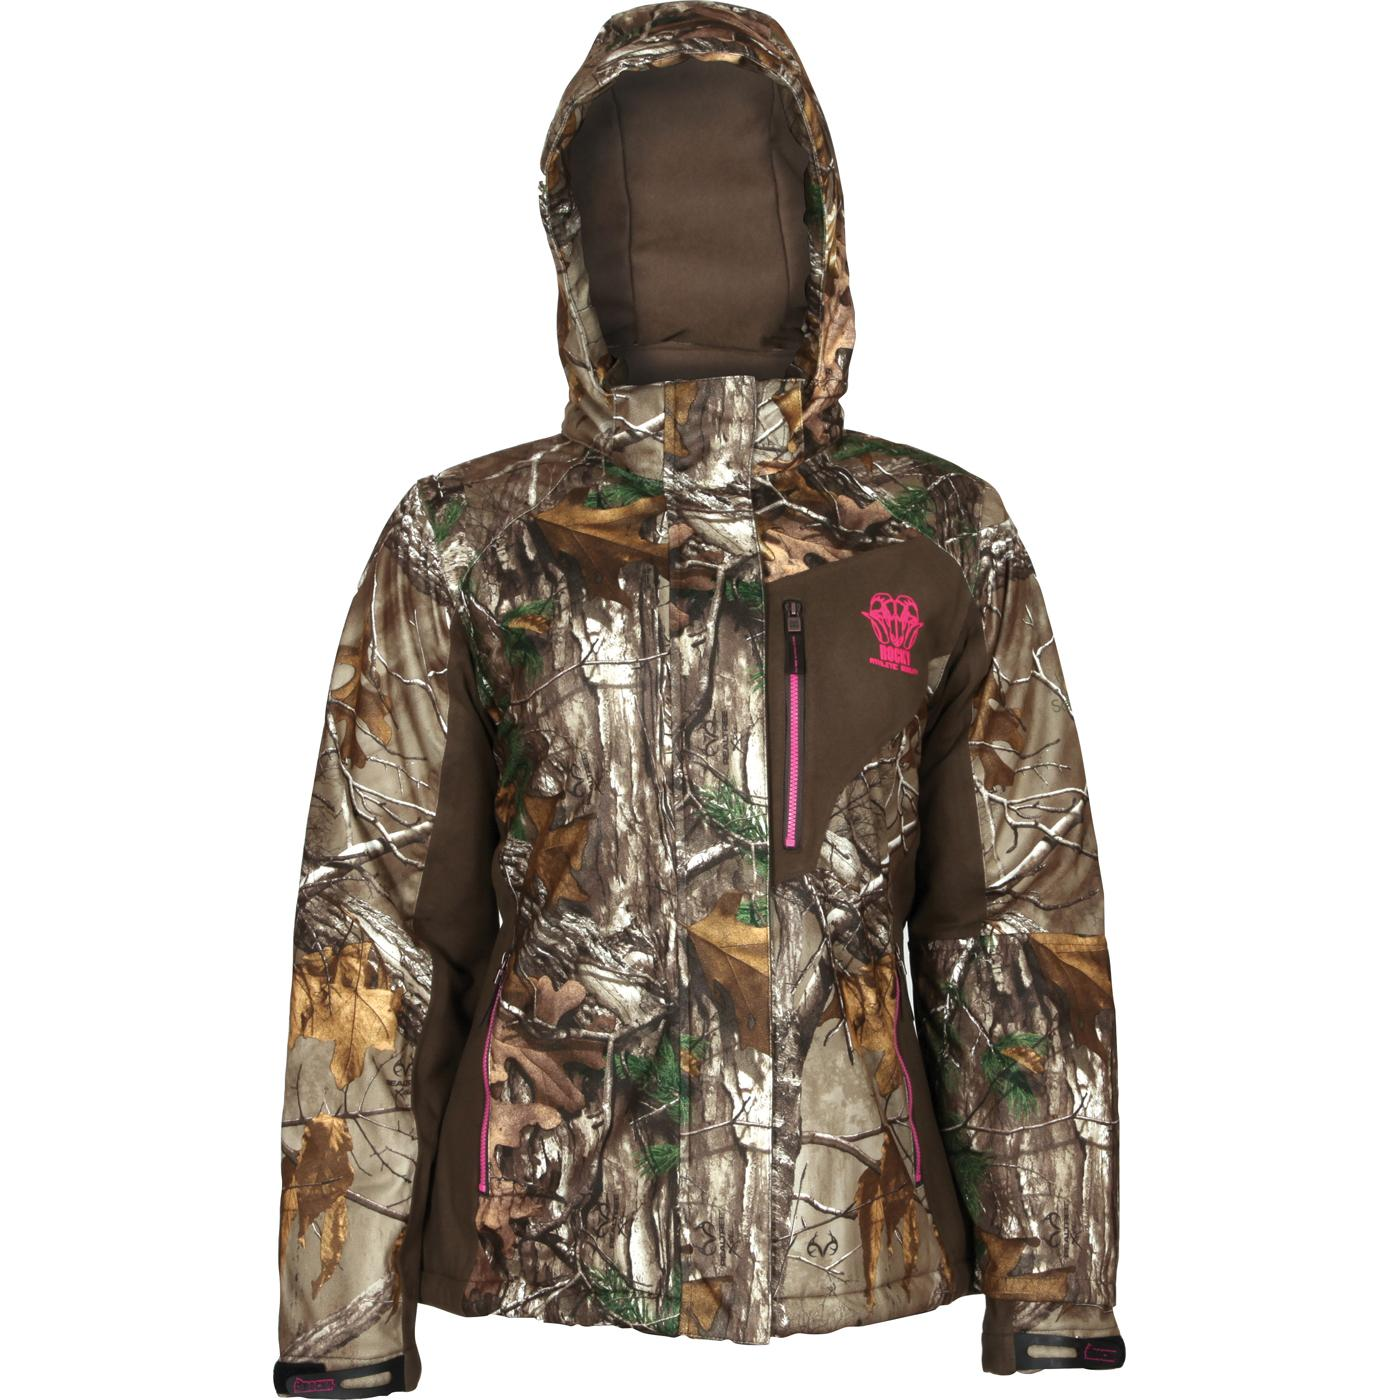 0cc3f2b7fdba1 Rocky Athletic Mobility Women's Level 3 Waterproof Insulated Parka, ,  large. Women's waterproof insulated camouflage coat